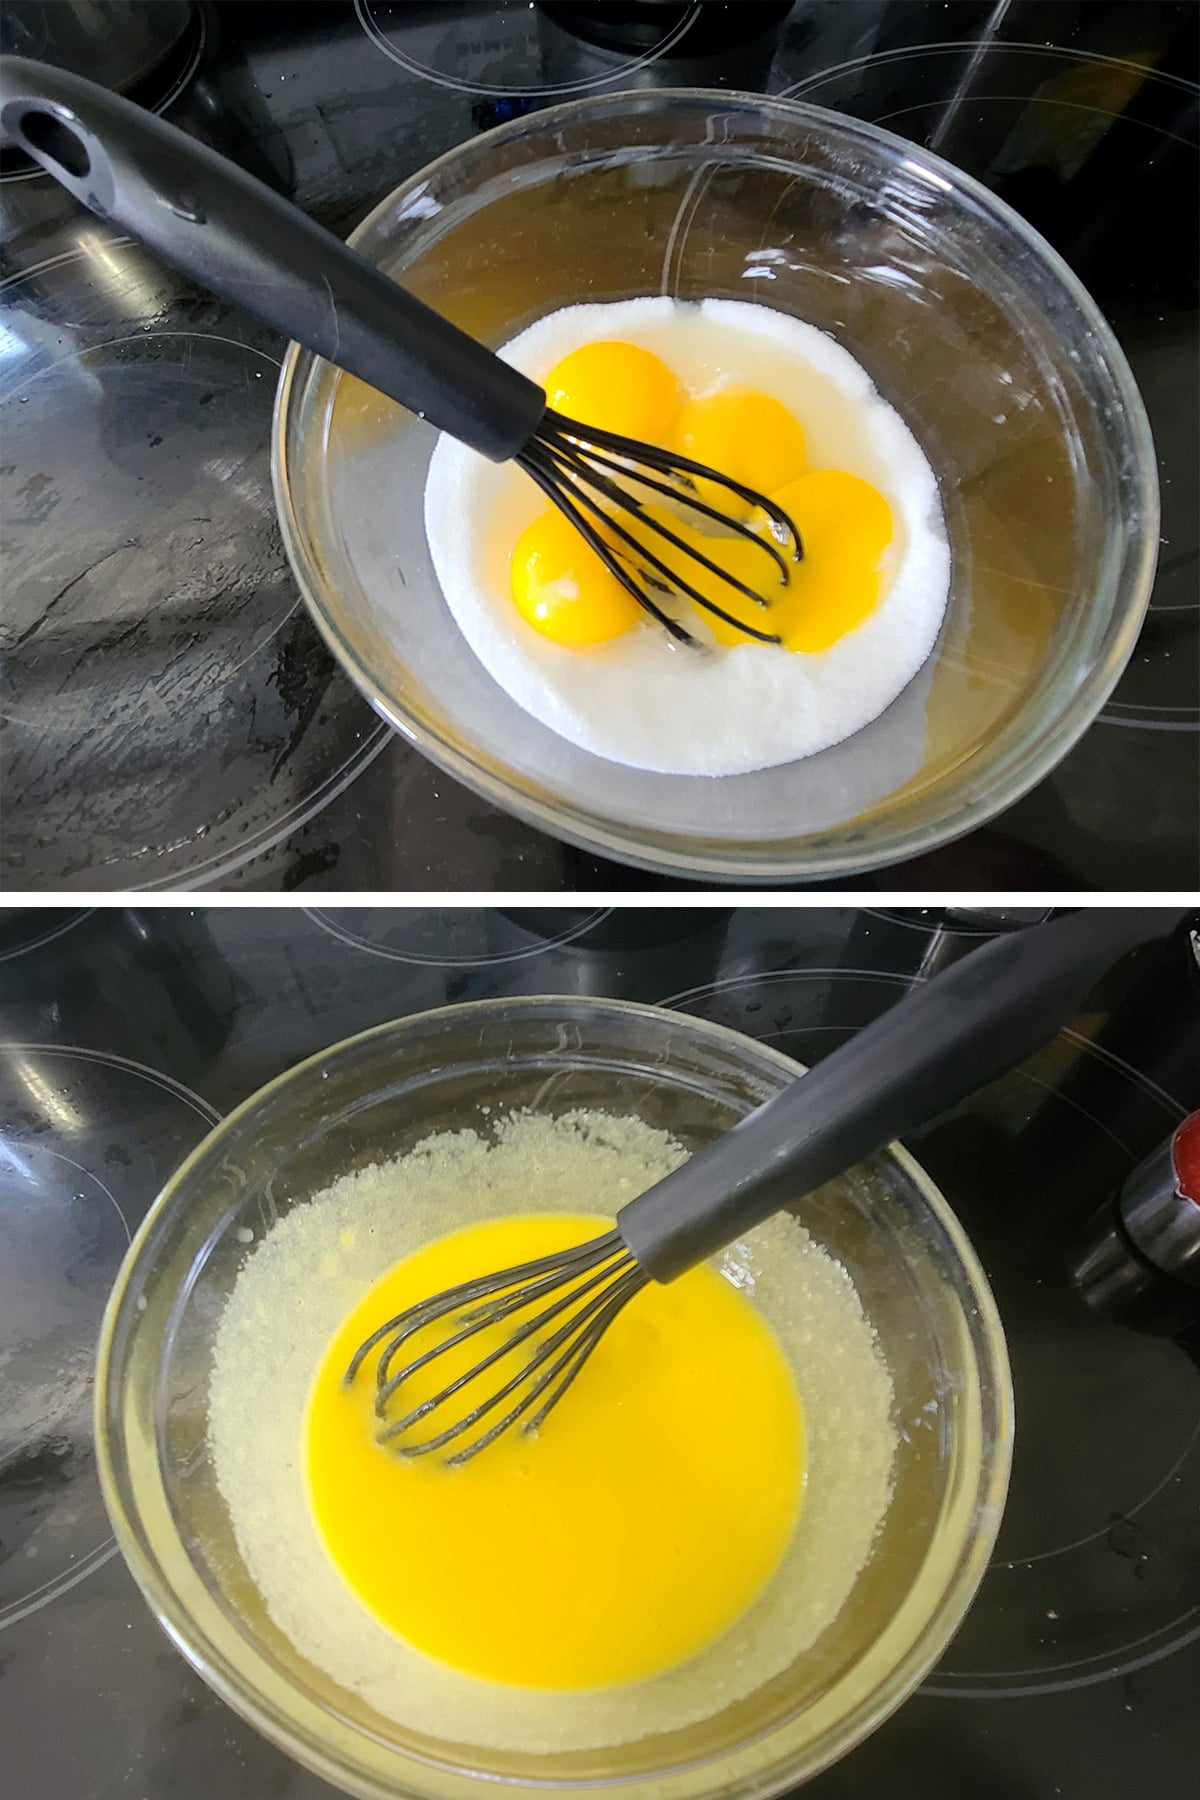 Eggs and sugar being whisked together in a glass bowl.